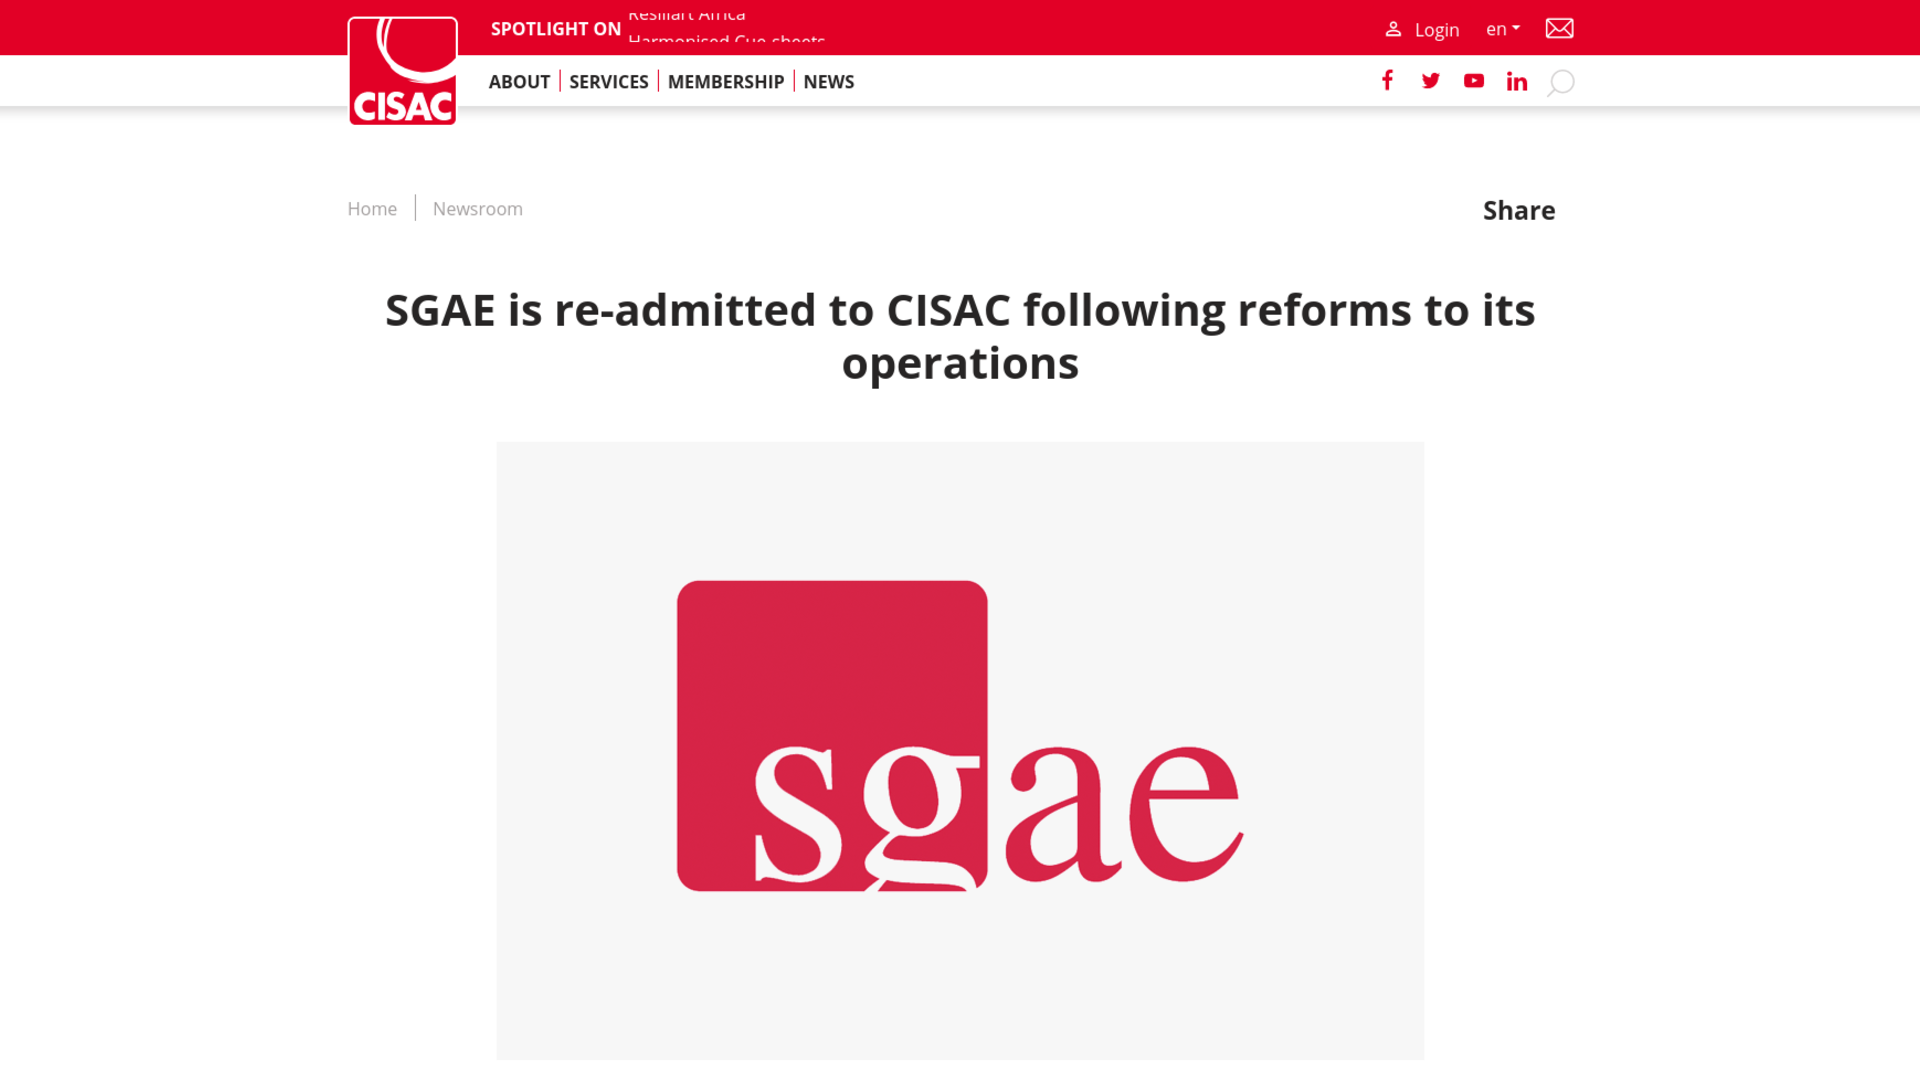 Fairness Rocks News SGAE is re-admitted to CISAC following reforms to its operations